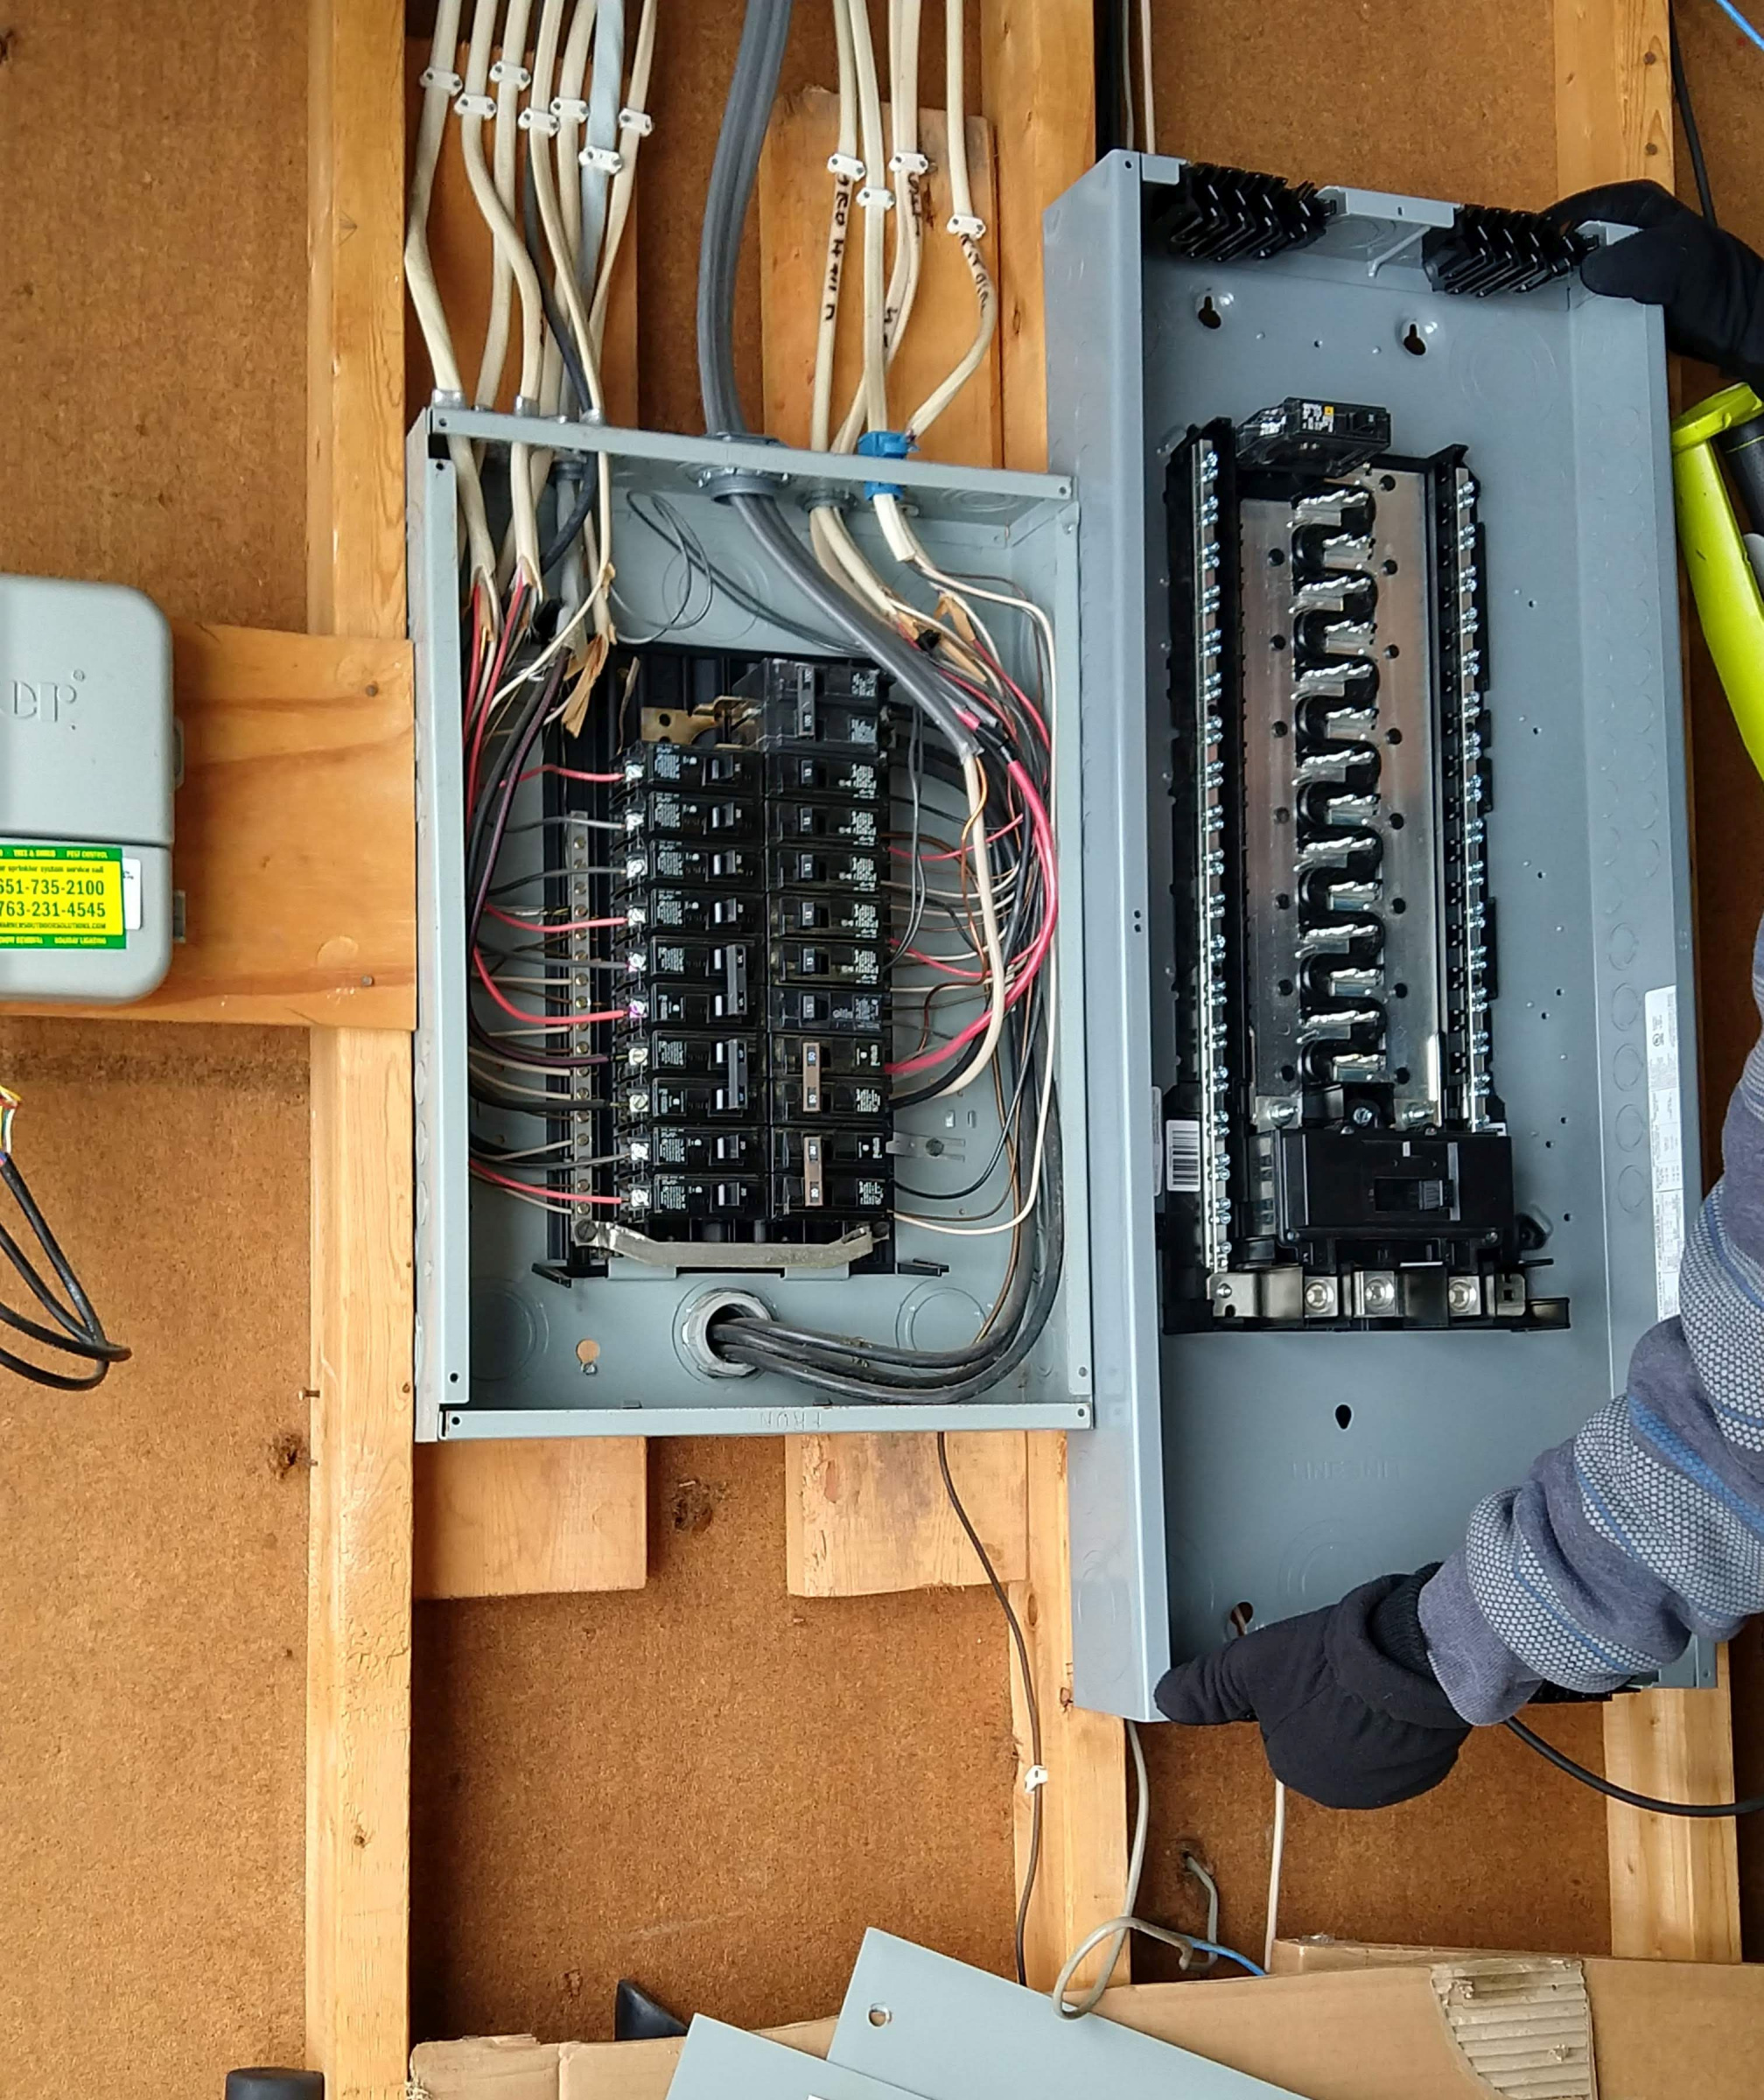 552029d1551585441t-upgrade-100a-panel-200a-panel Upgrading Electrical Panel From To Cost on